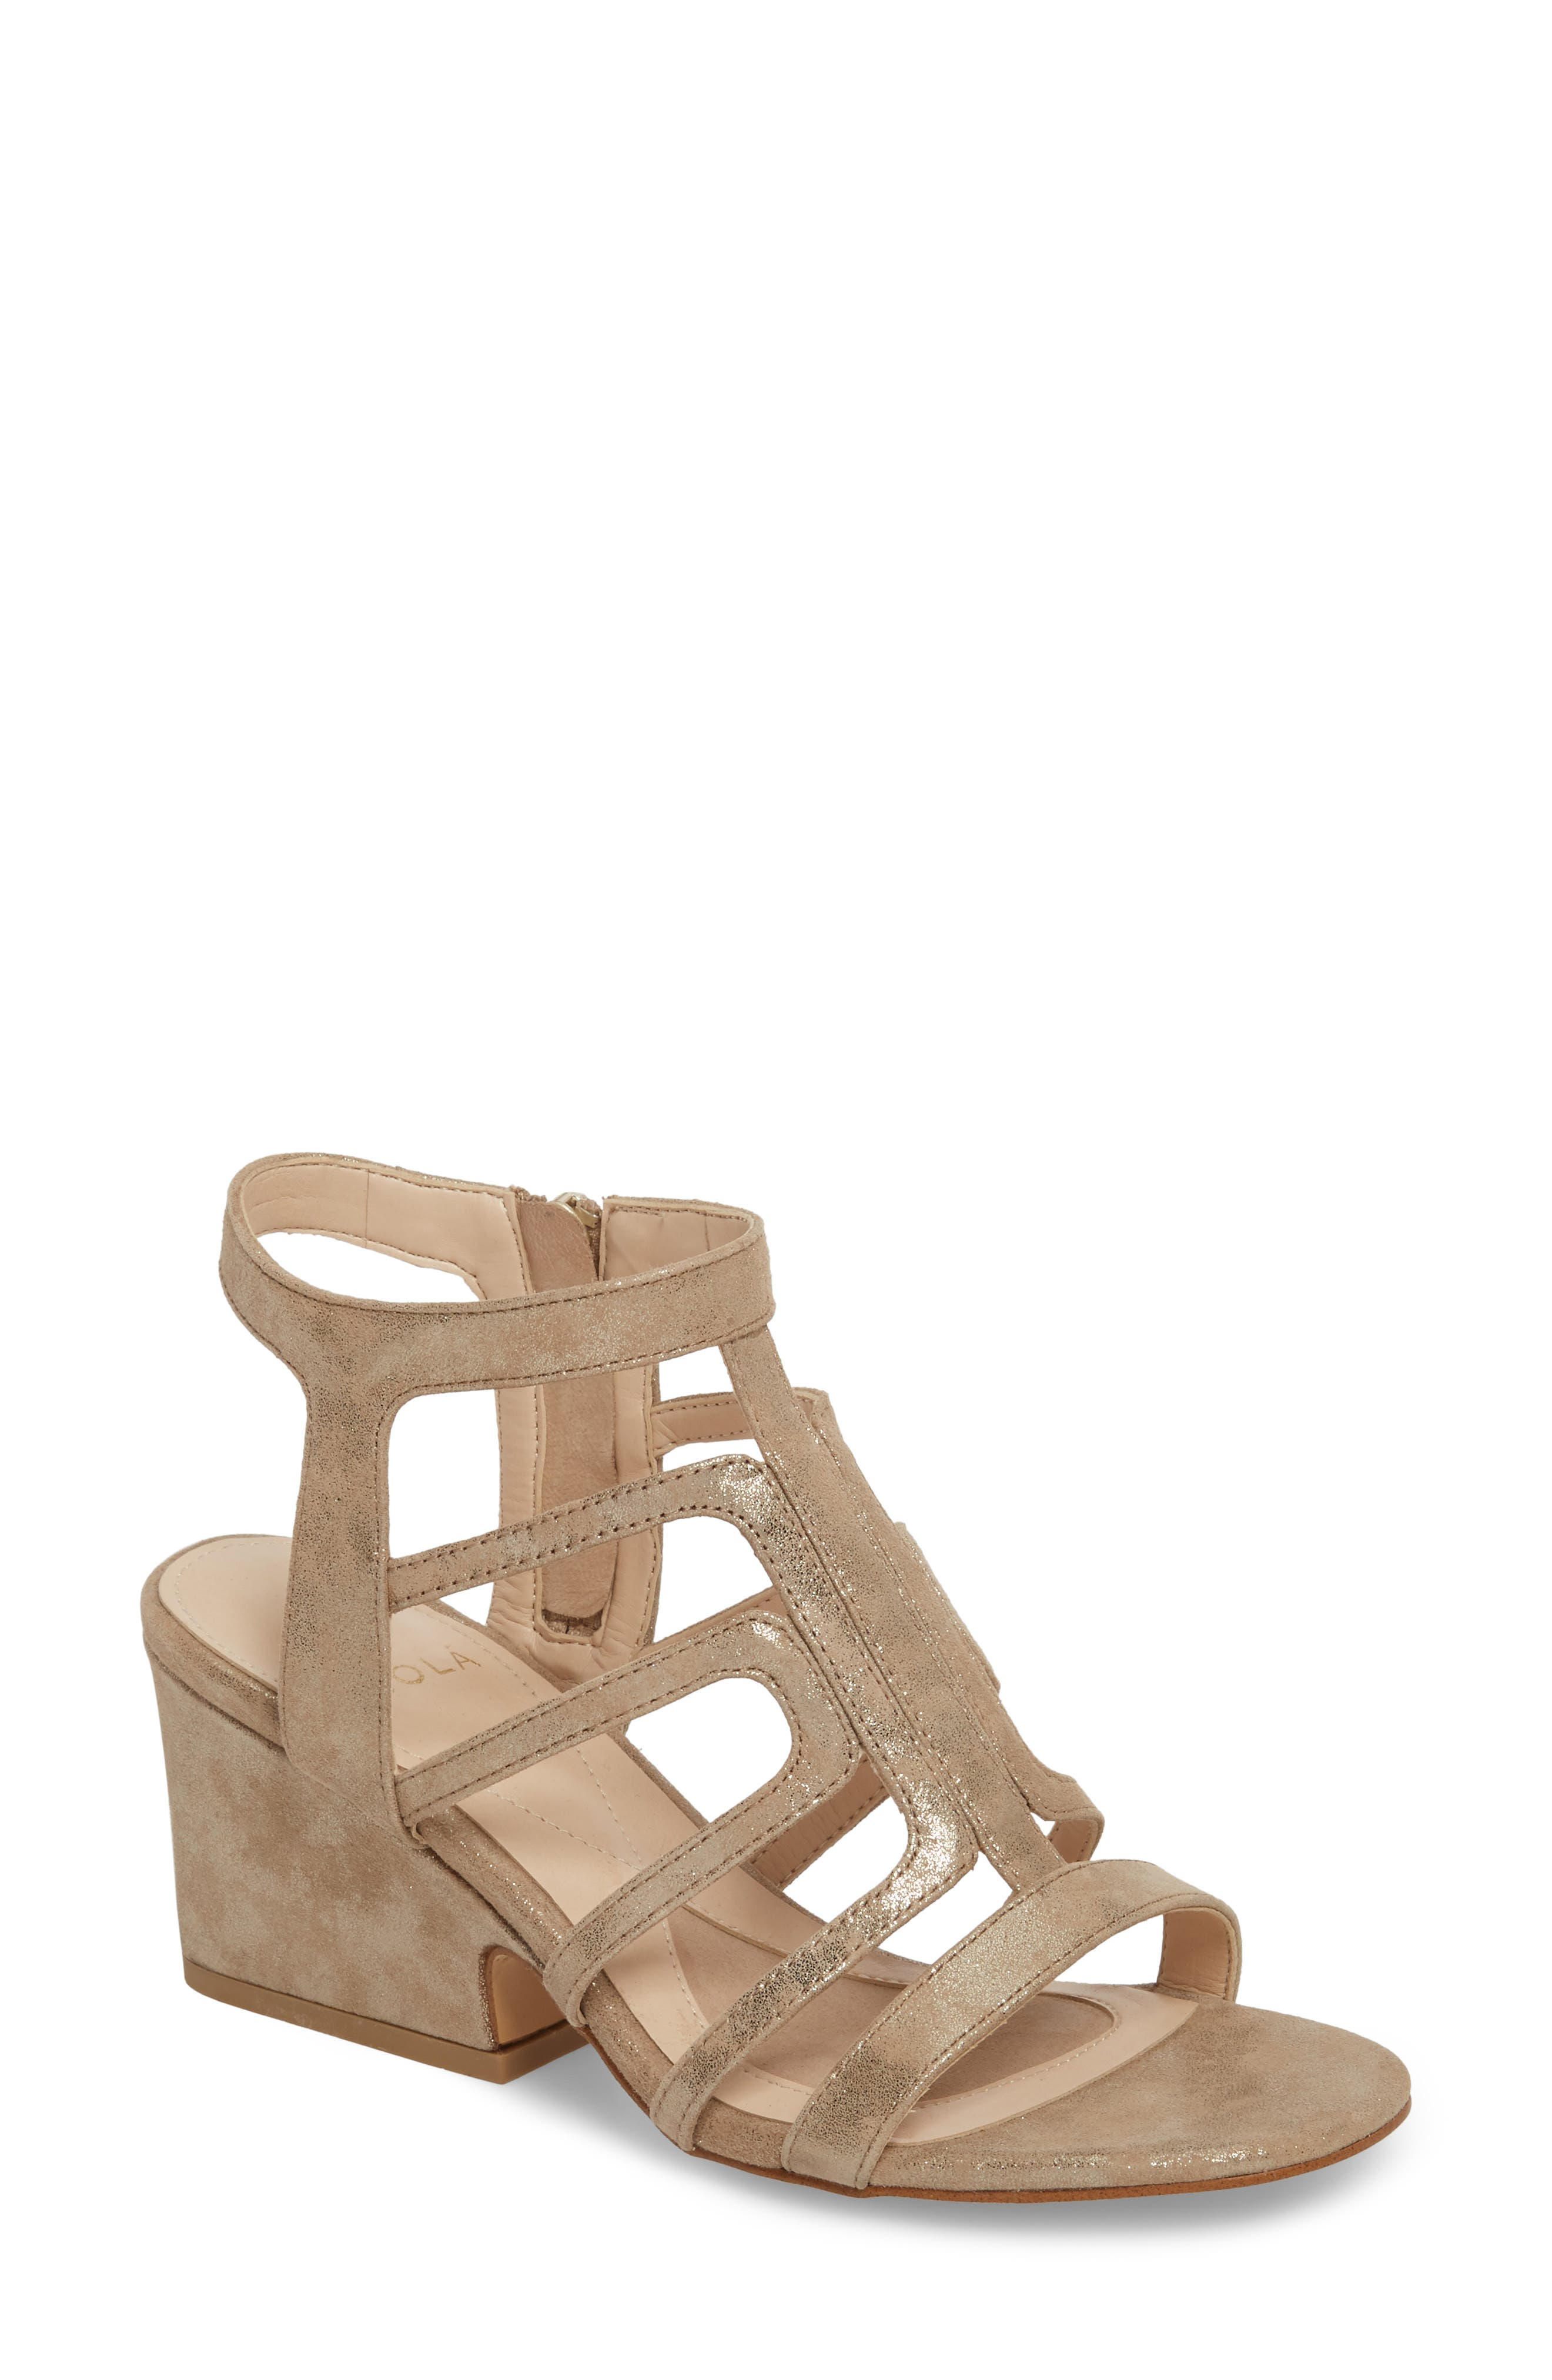 ISOLÁ Lina Sandal, Main, color, ANTHRACITE SUEDE